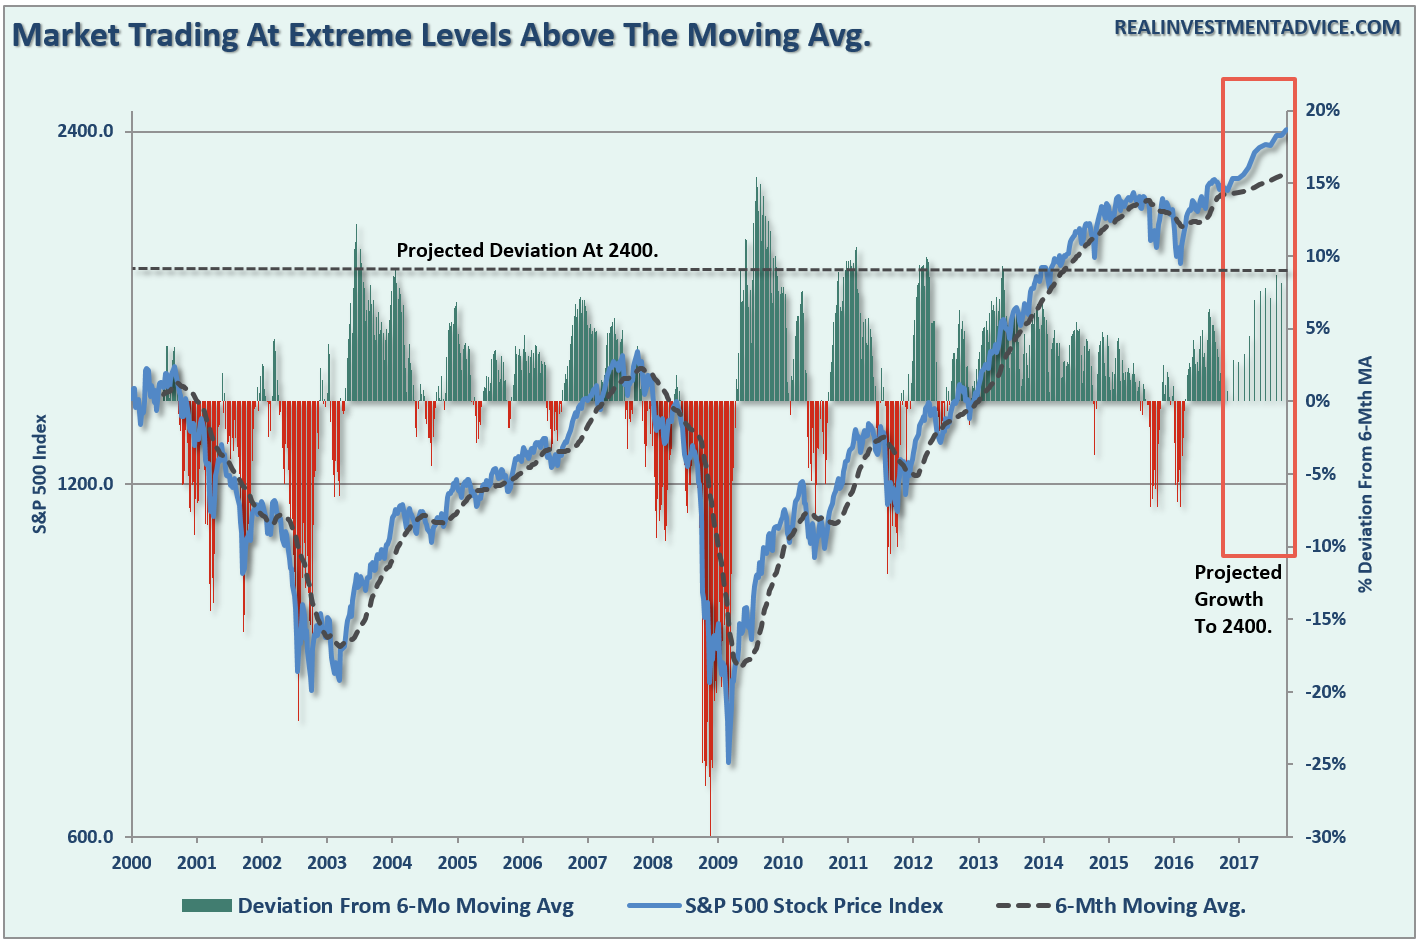 Market Trading At Extreme Levels Above The Moving AVG